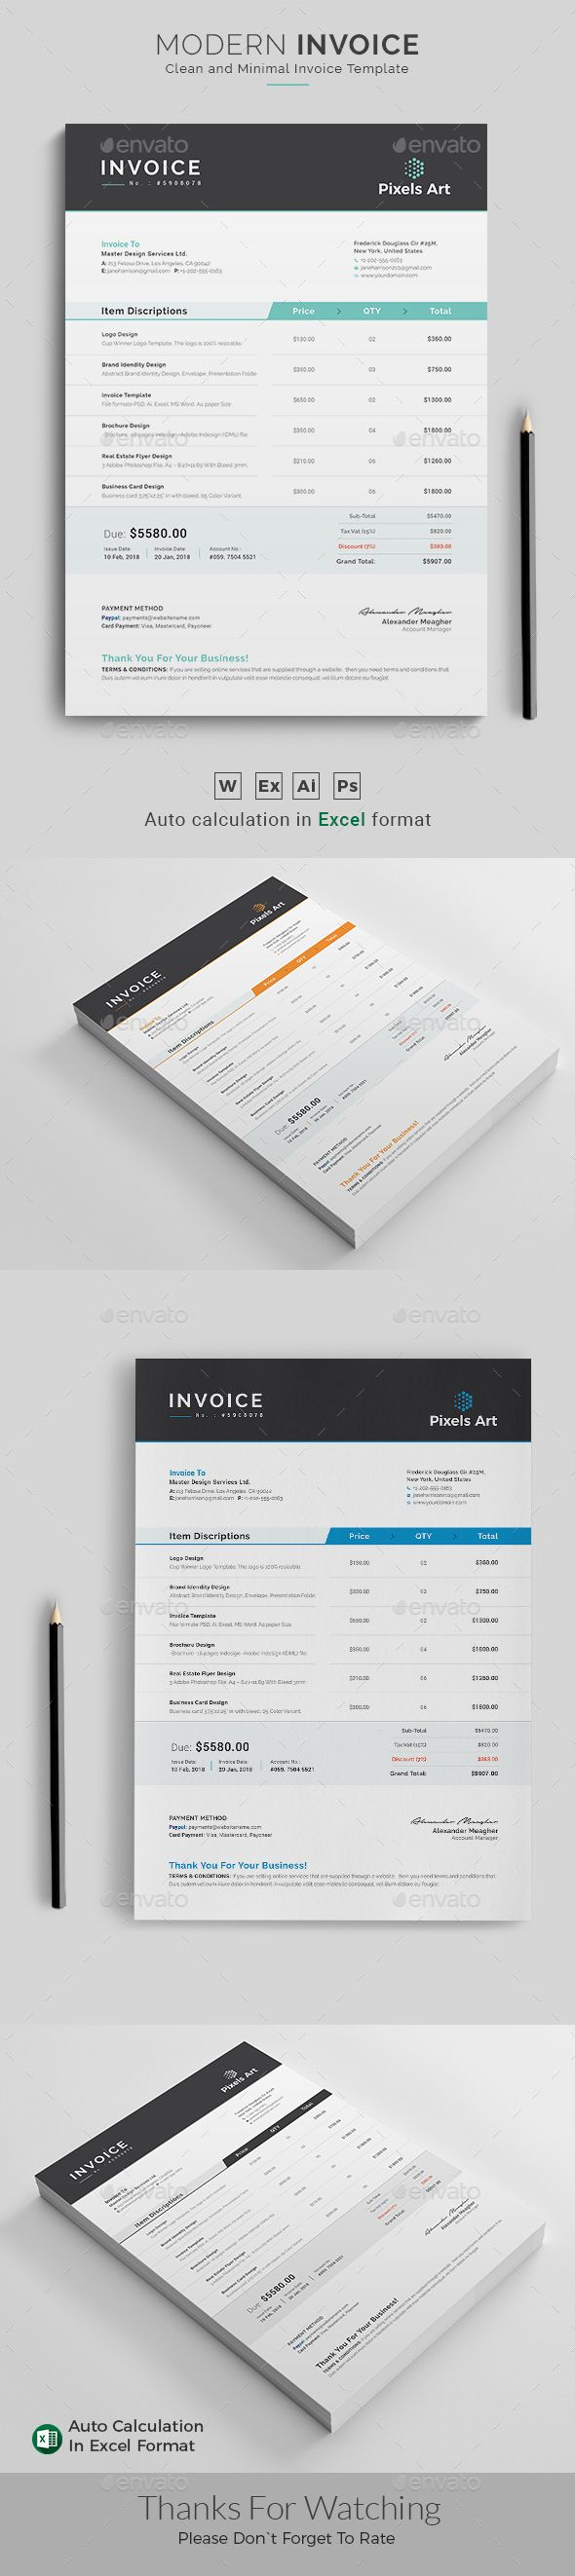 Invoice Template PSD, AI, MS Word, Excel Files